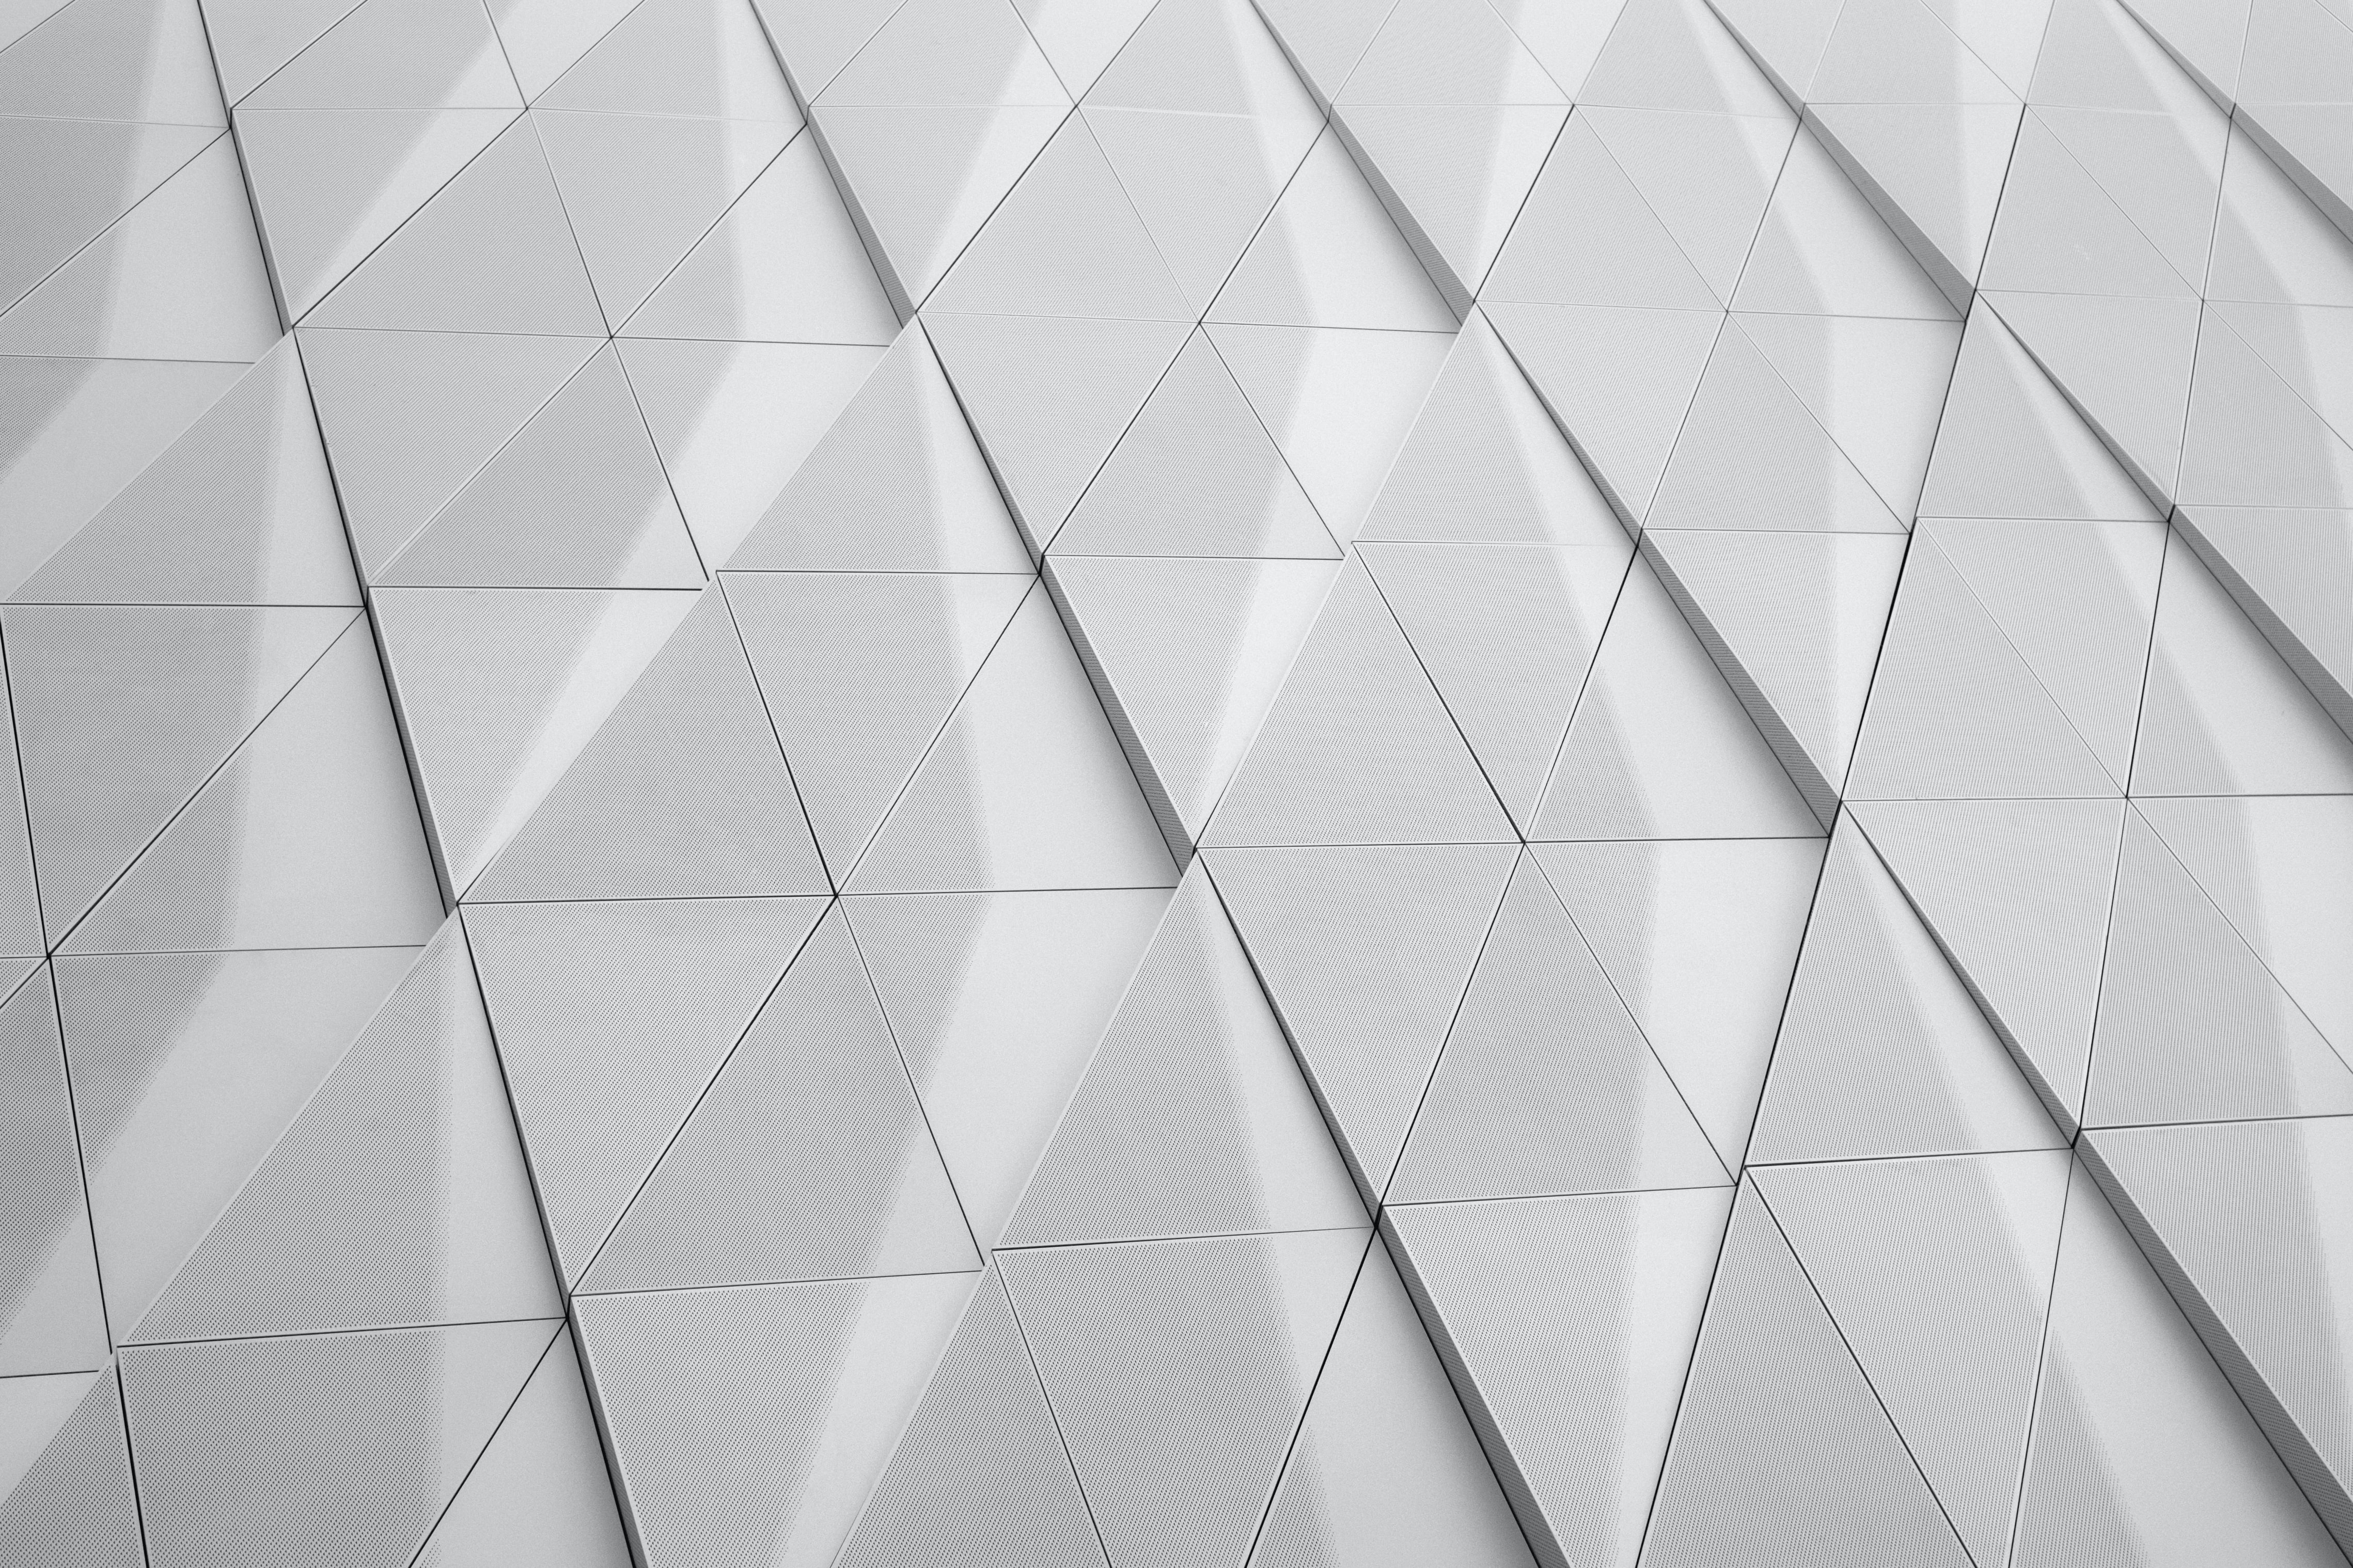 A white facade with a geometric pattern made up of triangles